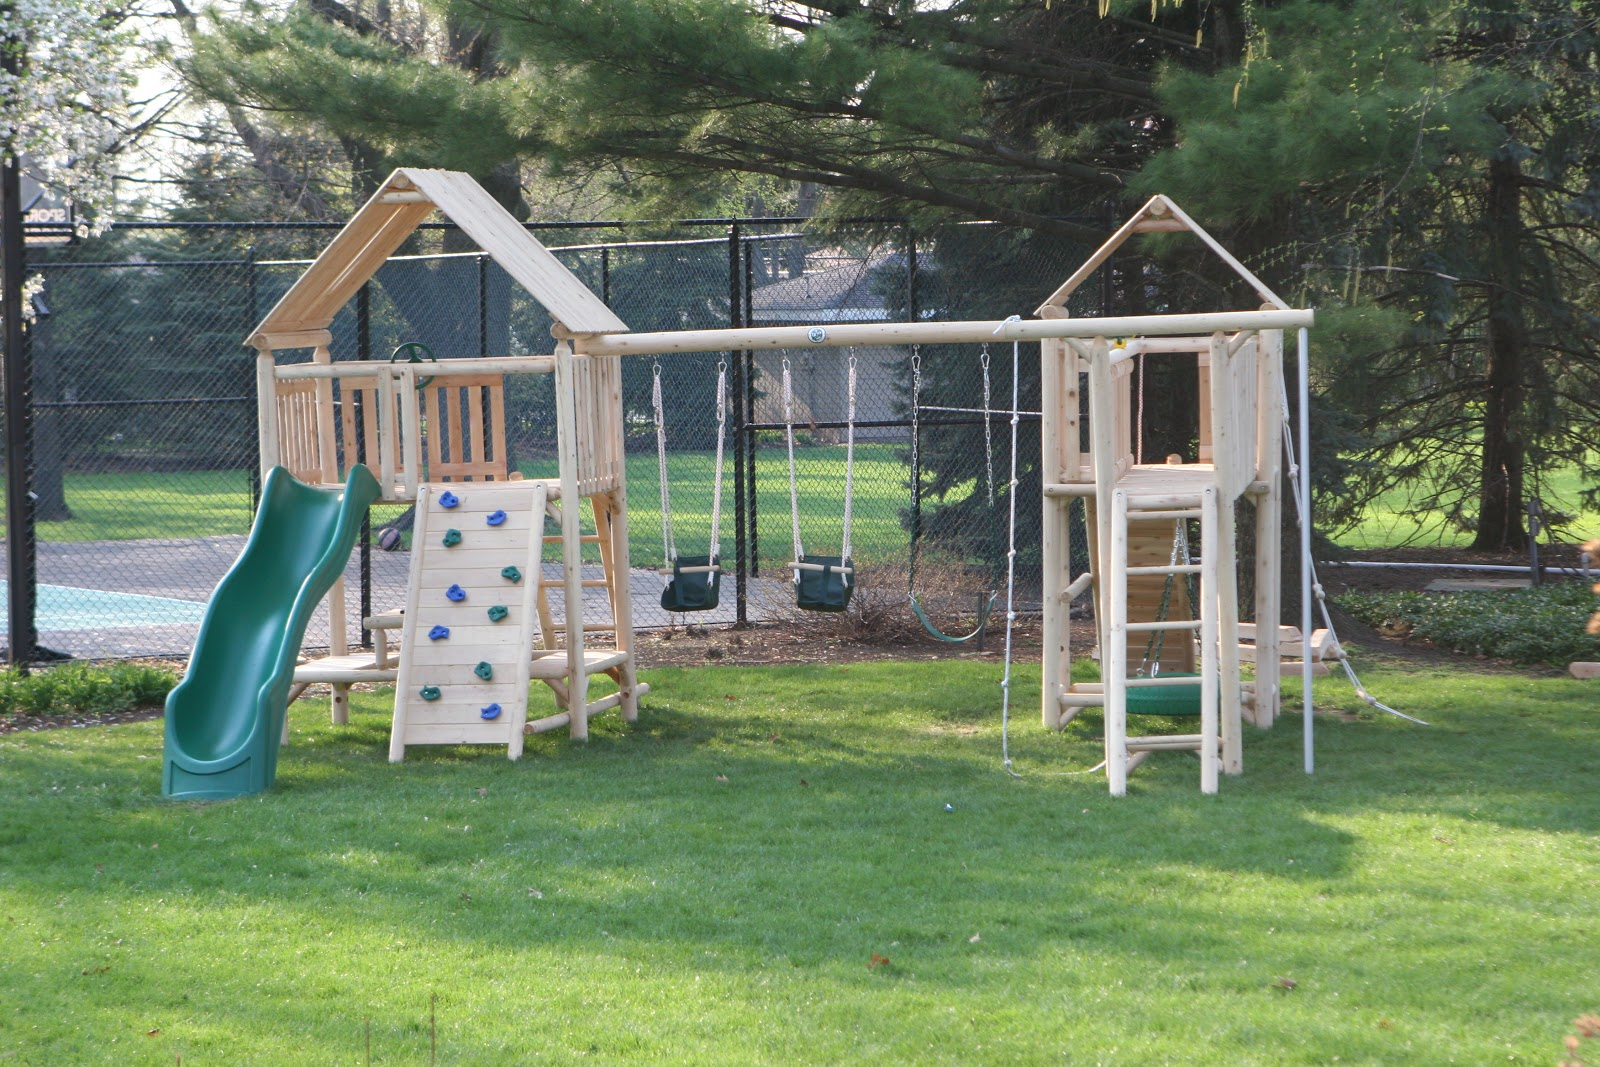 Do It Yourself Home Design: Do It Yourself Storage Shed Plans: Wooden Playset Plans